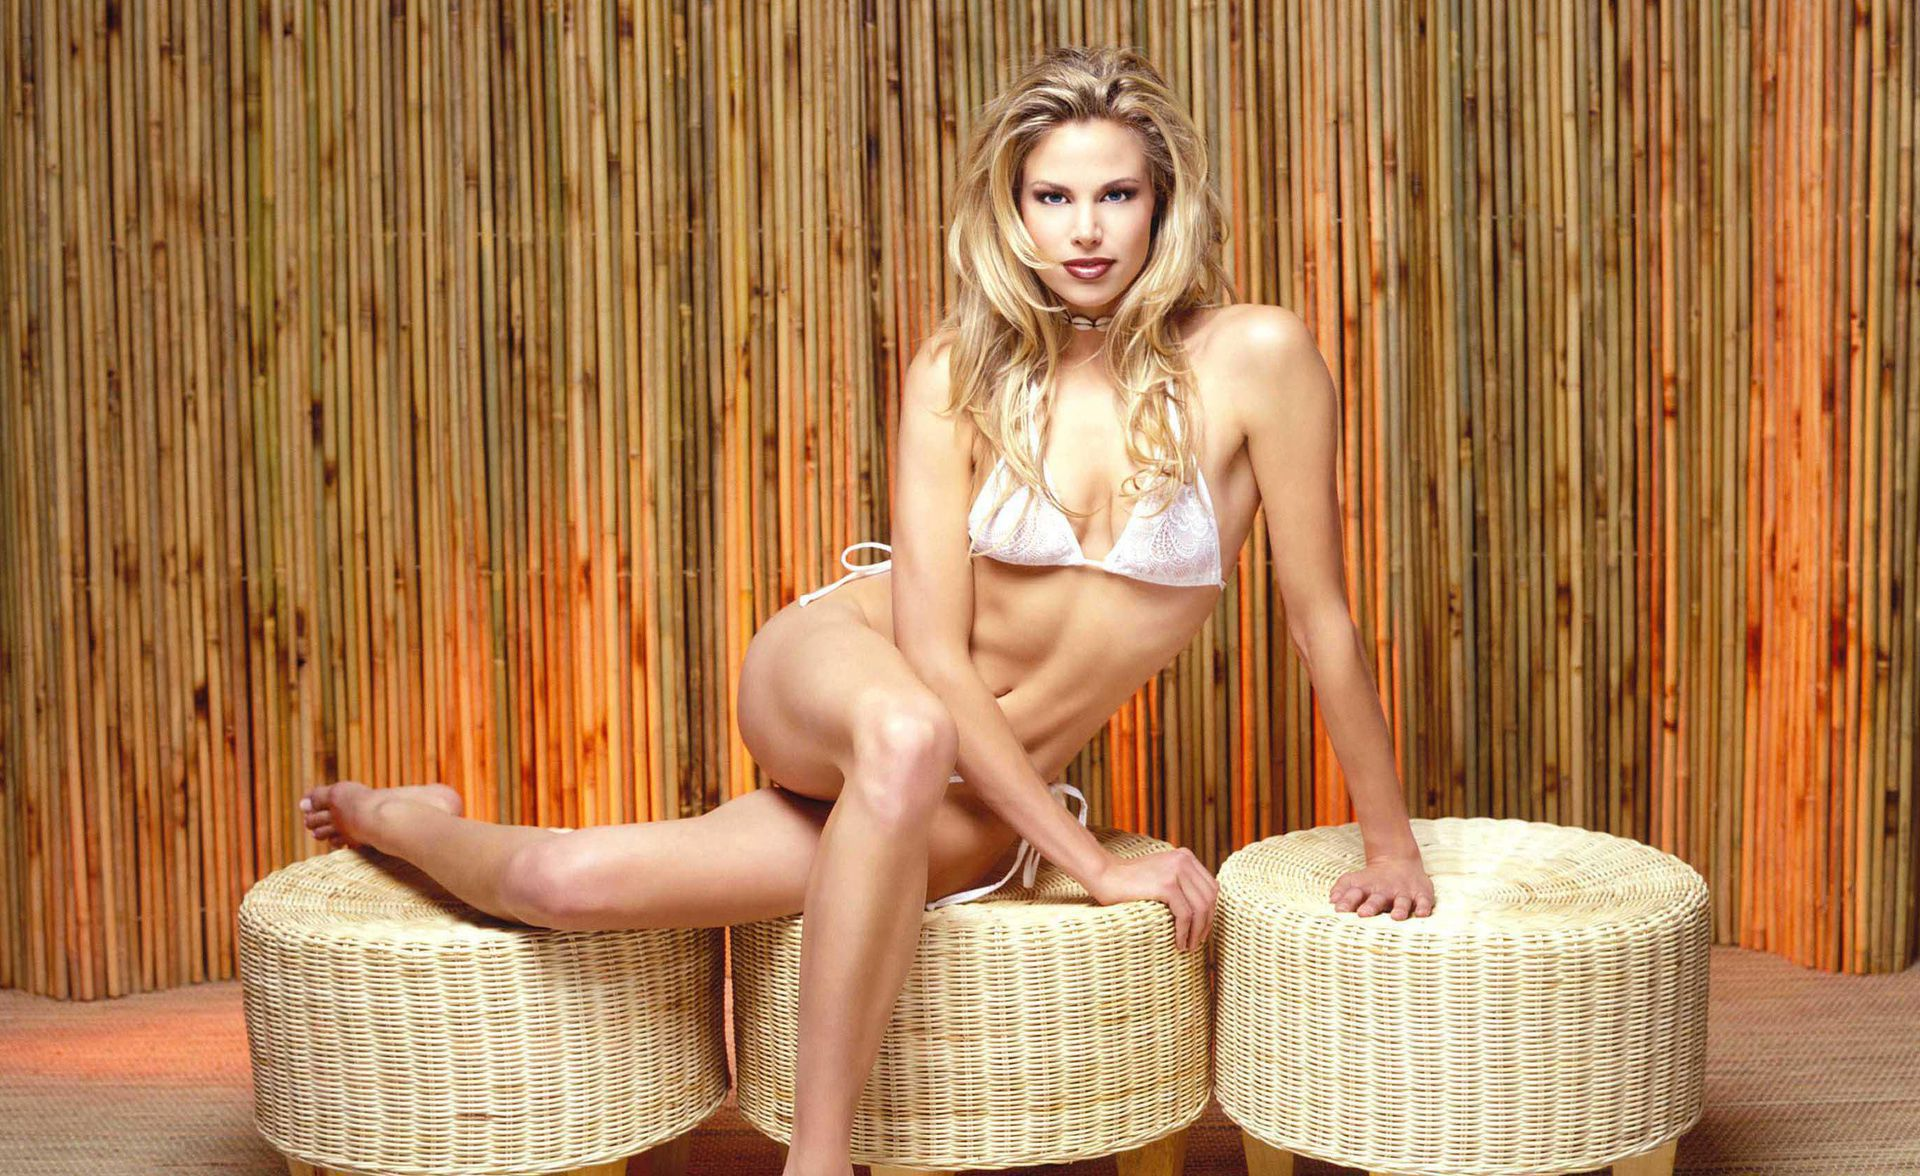 Brooke Burns Wallpaper Pack